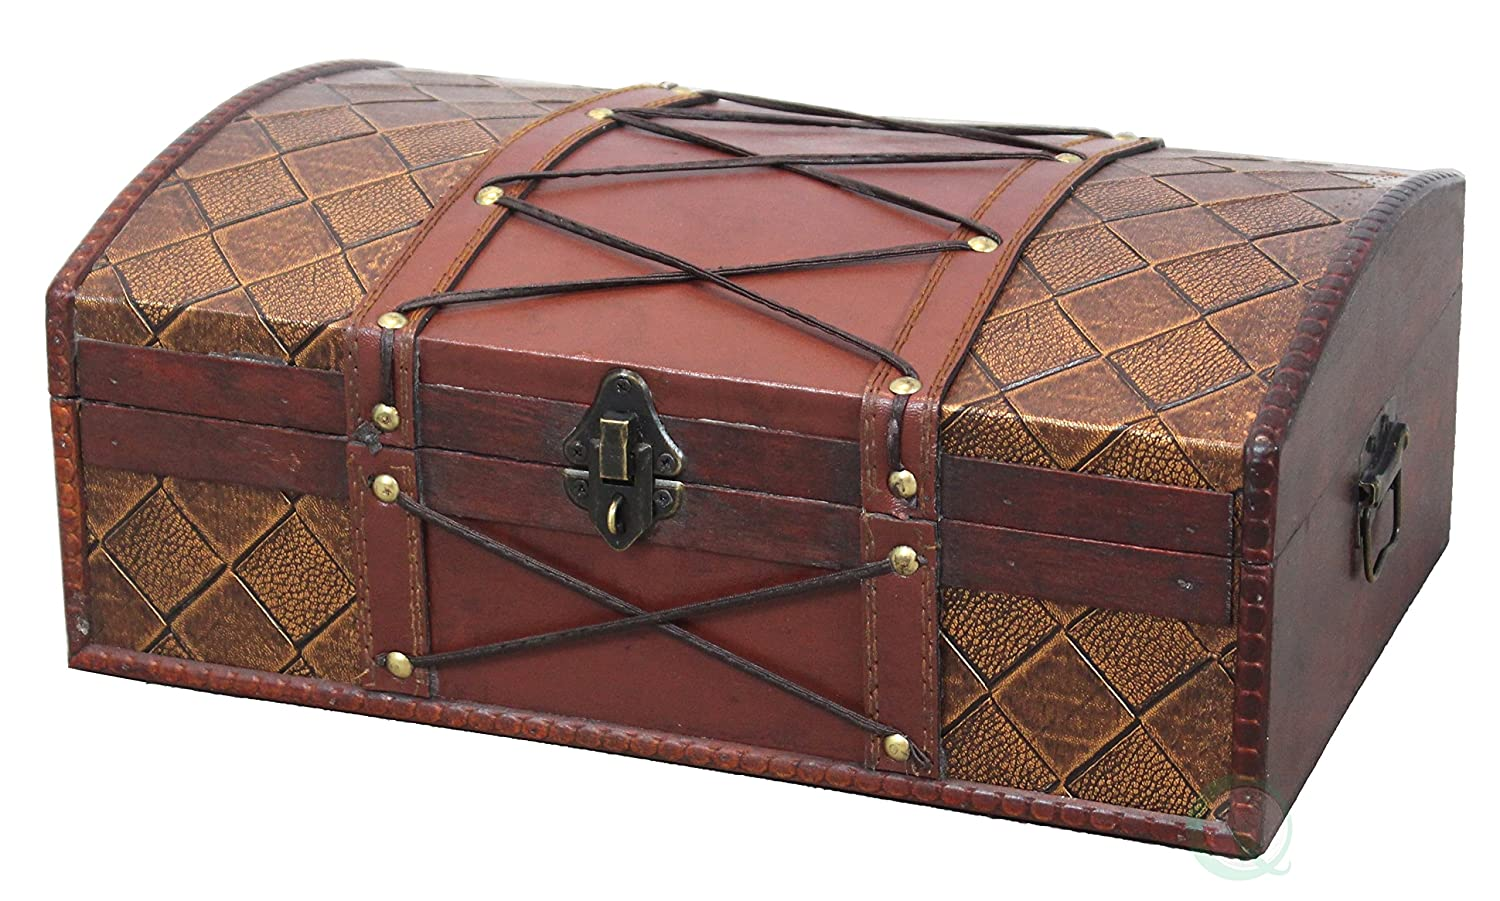 Amazon vintiquewisetm pirate treasure chestbox with leather amazon vintiquewisetm pirate treasure chestbox with leather x kitchen dining publicscrutiny Image collections